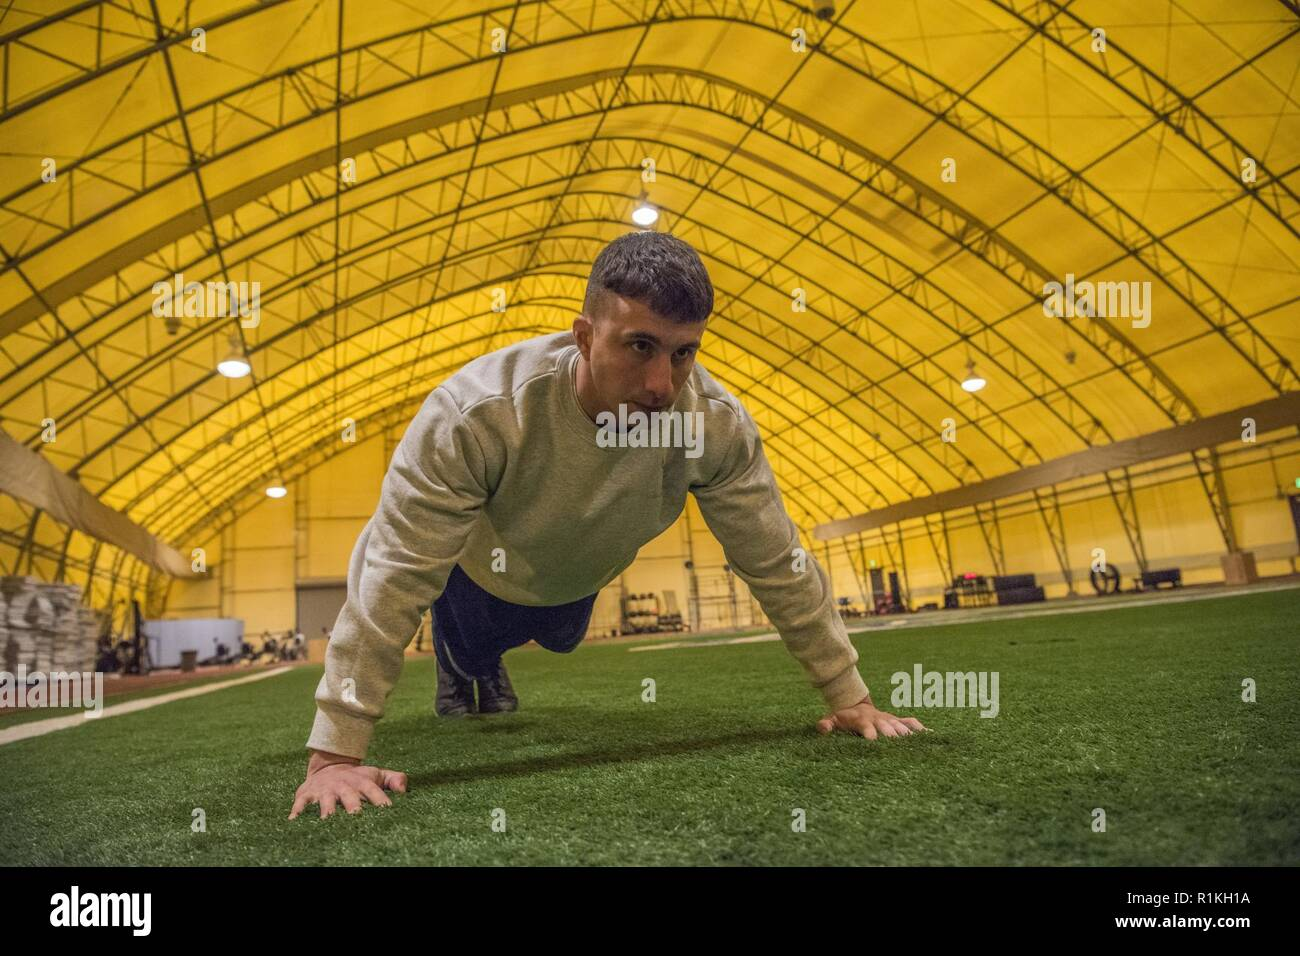 Staff Sgt. James Guardiano, 50th Civil Engineer Squadron operations management, readies for a push up inside the Indoor Running Track at Schriever Air Force Base, Colorado, Oct. 11, 2018. The IRT features newly installed heating socks which retain heat and warms the overall temperature of the facility for indoor fitness assessments. - Stock Image